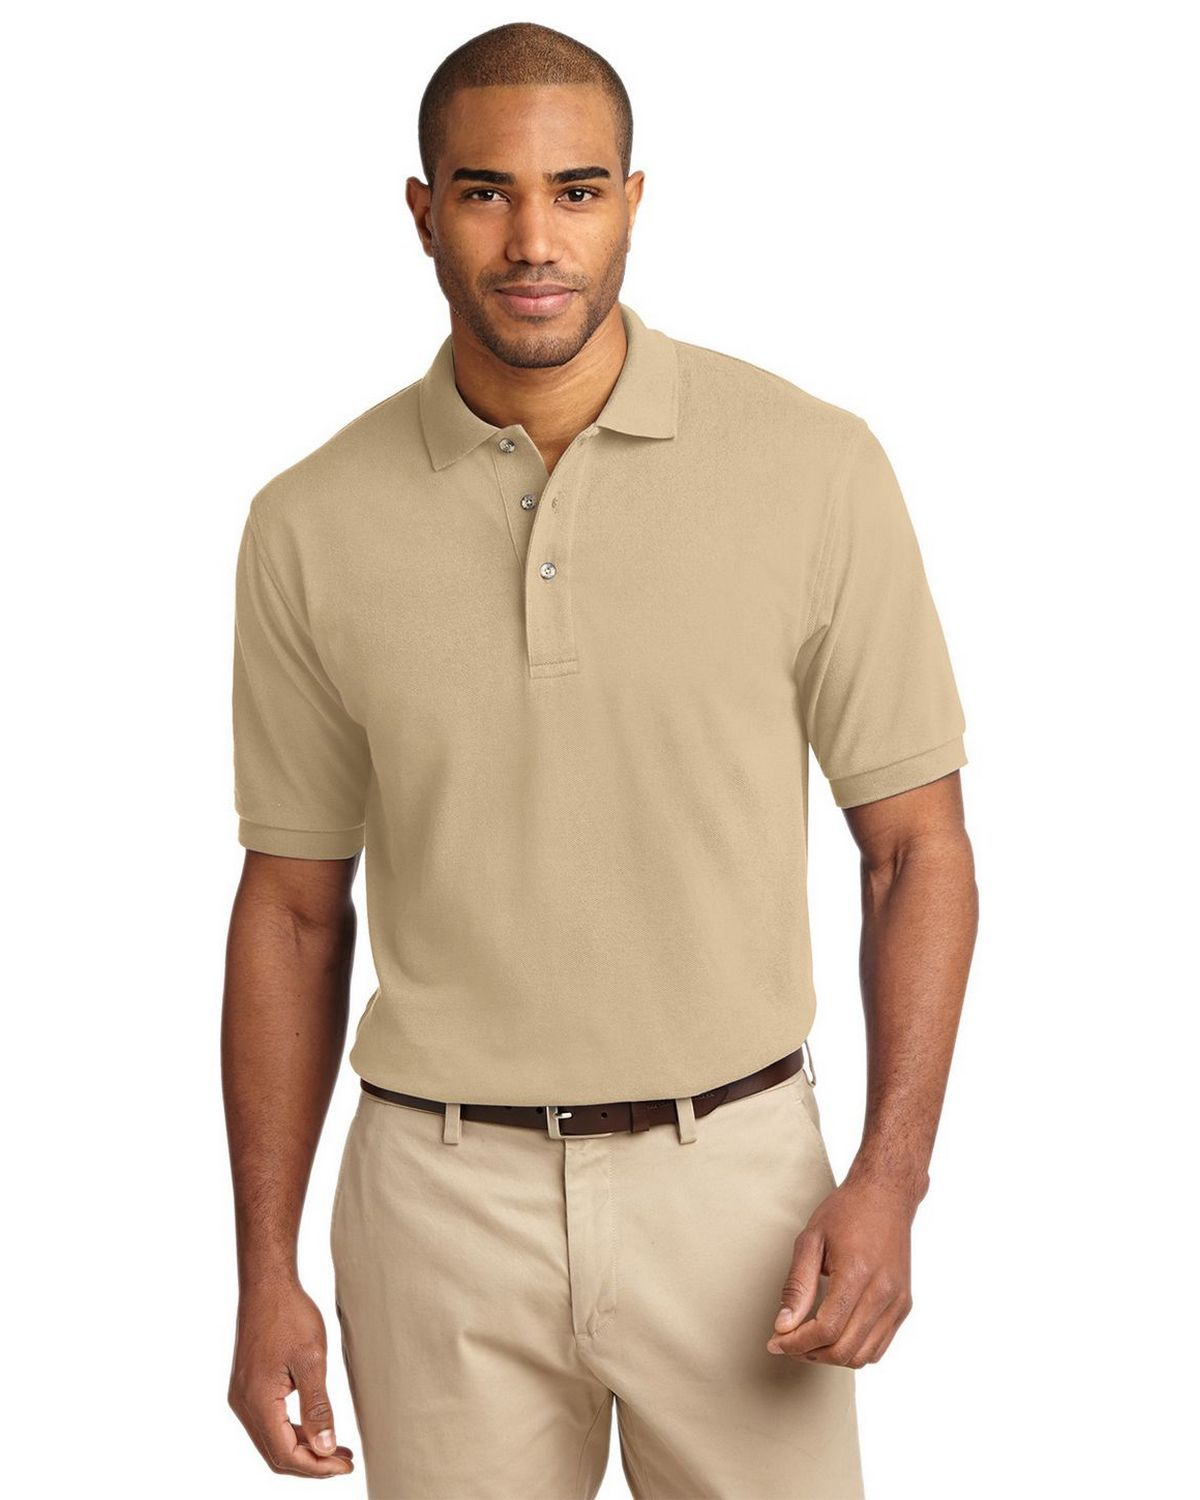 Port Authority K420 Pique Knit Polo - Stone - XS